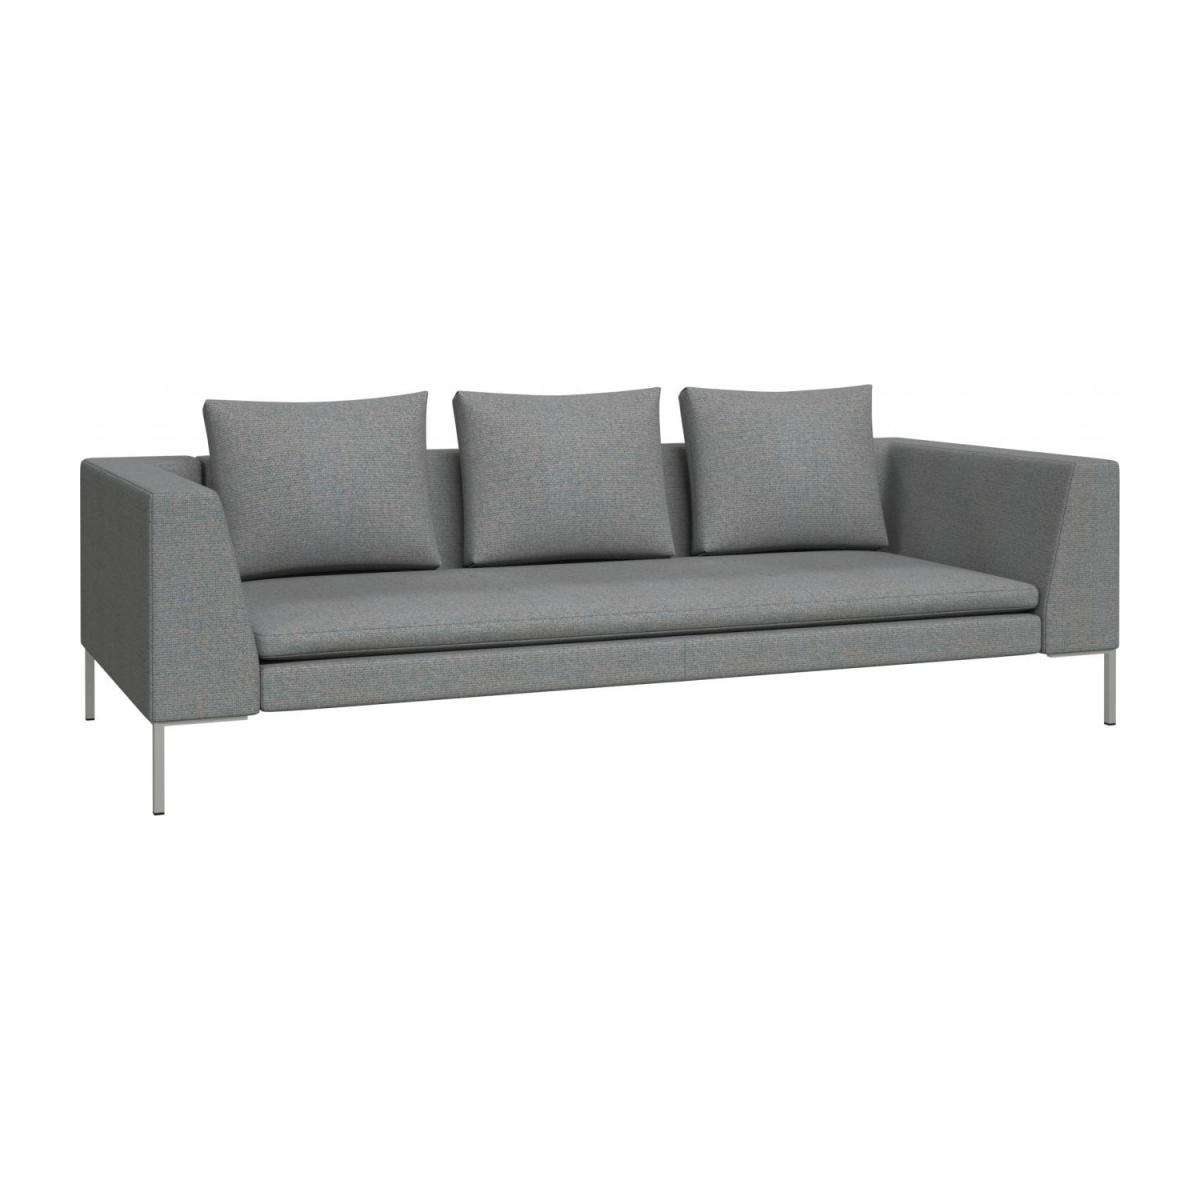 3 seater sofa in Lecce fabric, blue reef n°1